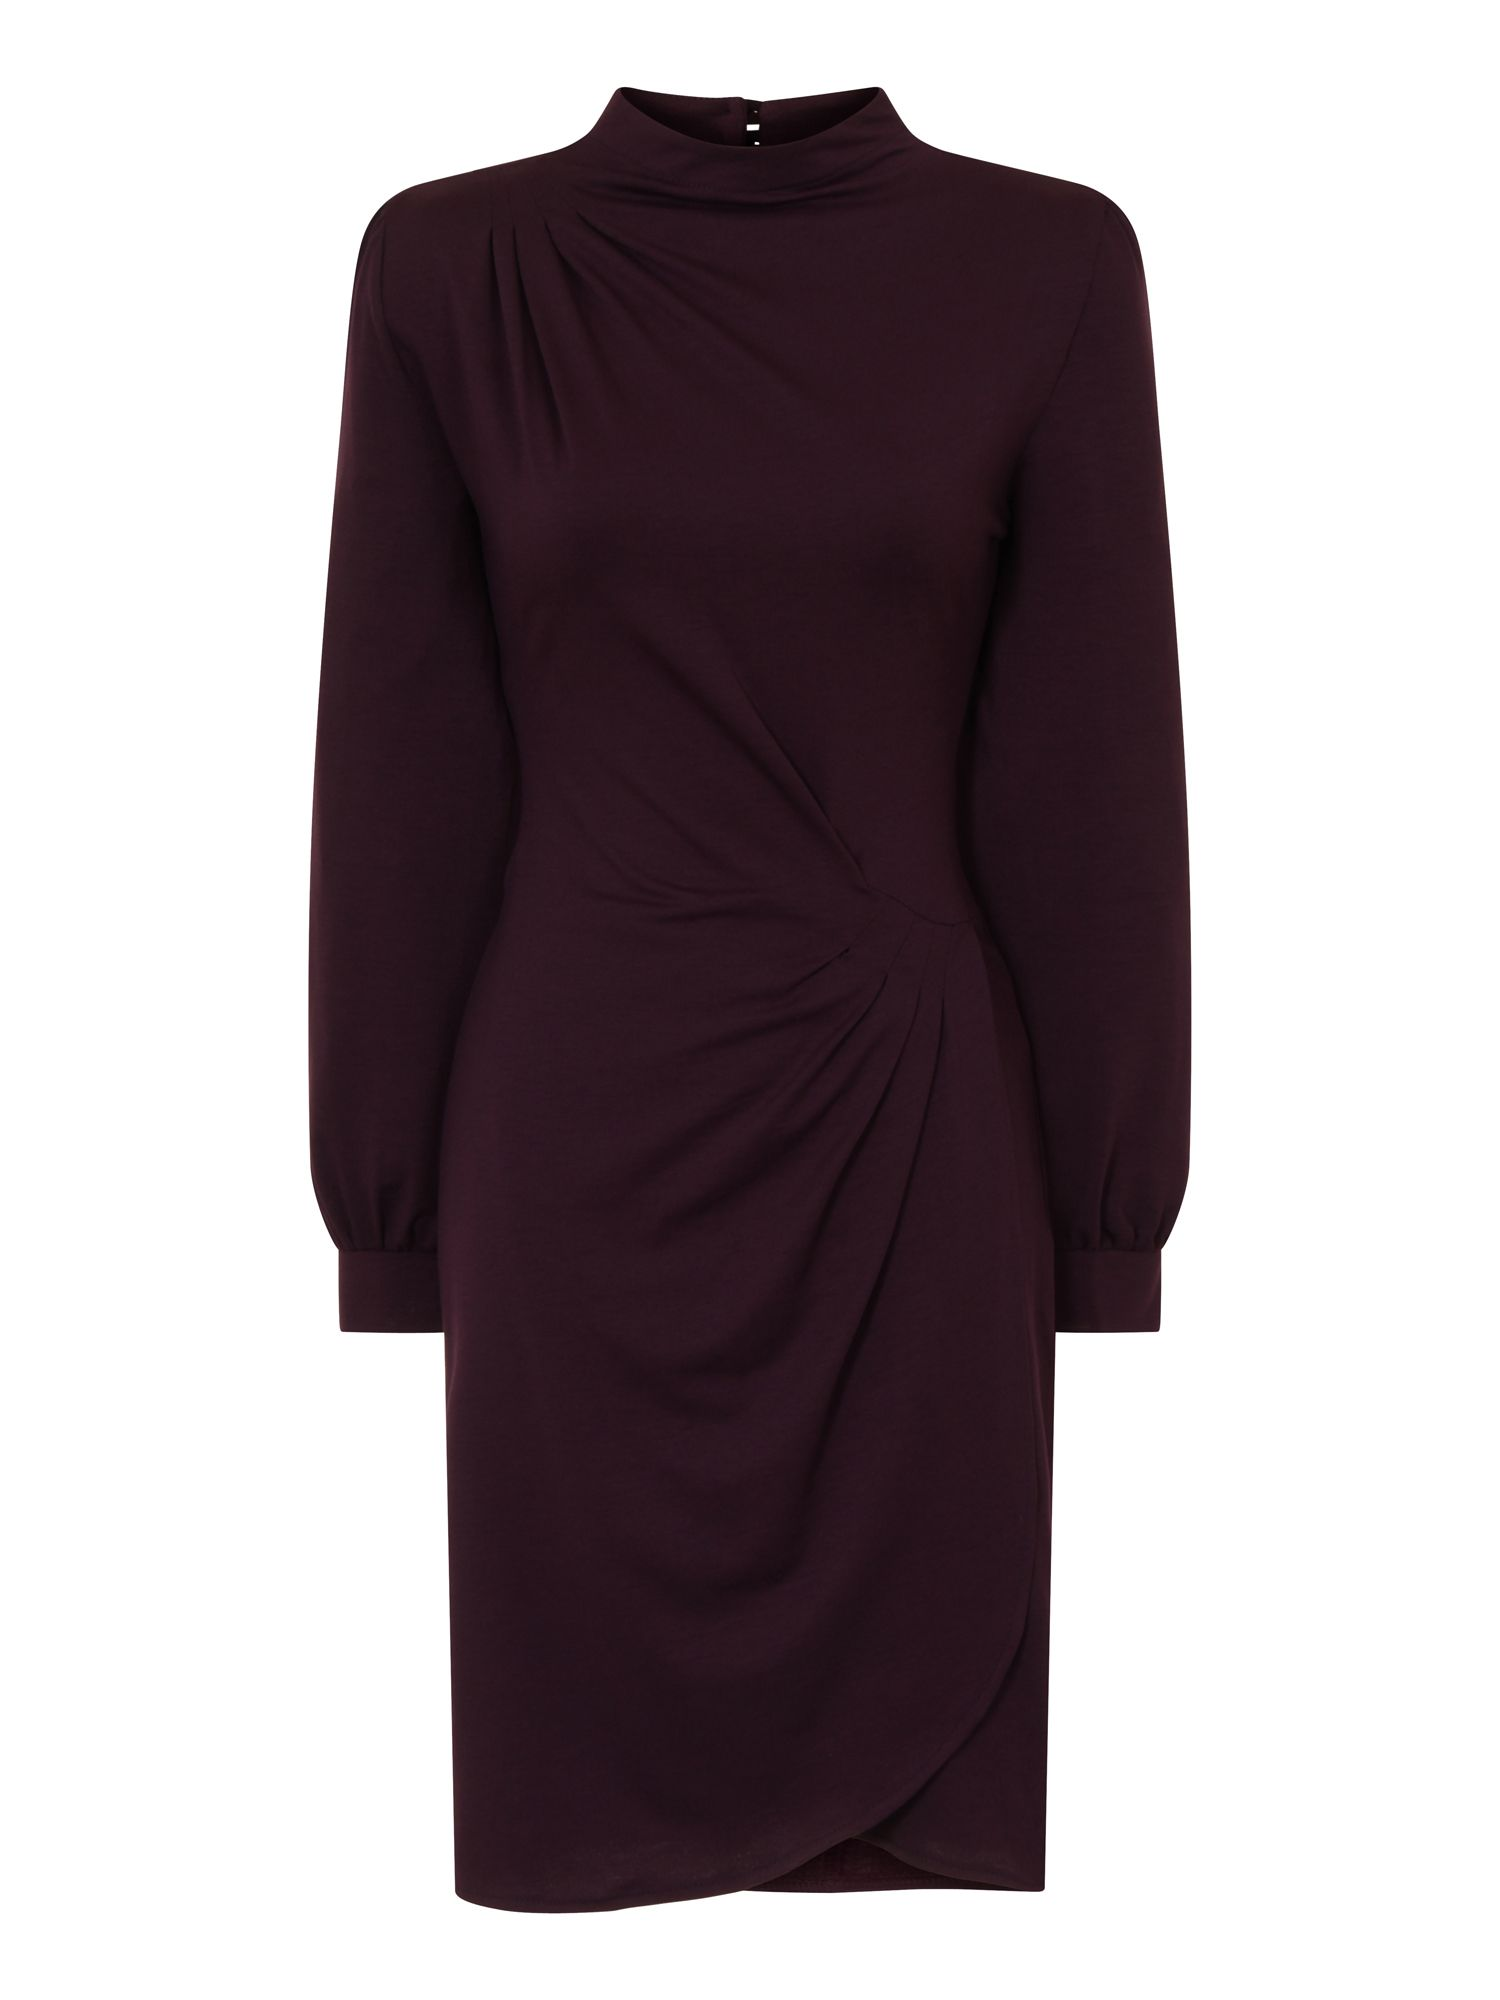 HotSquash Long Sleeve Thermal Agnes Dress, Damson